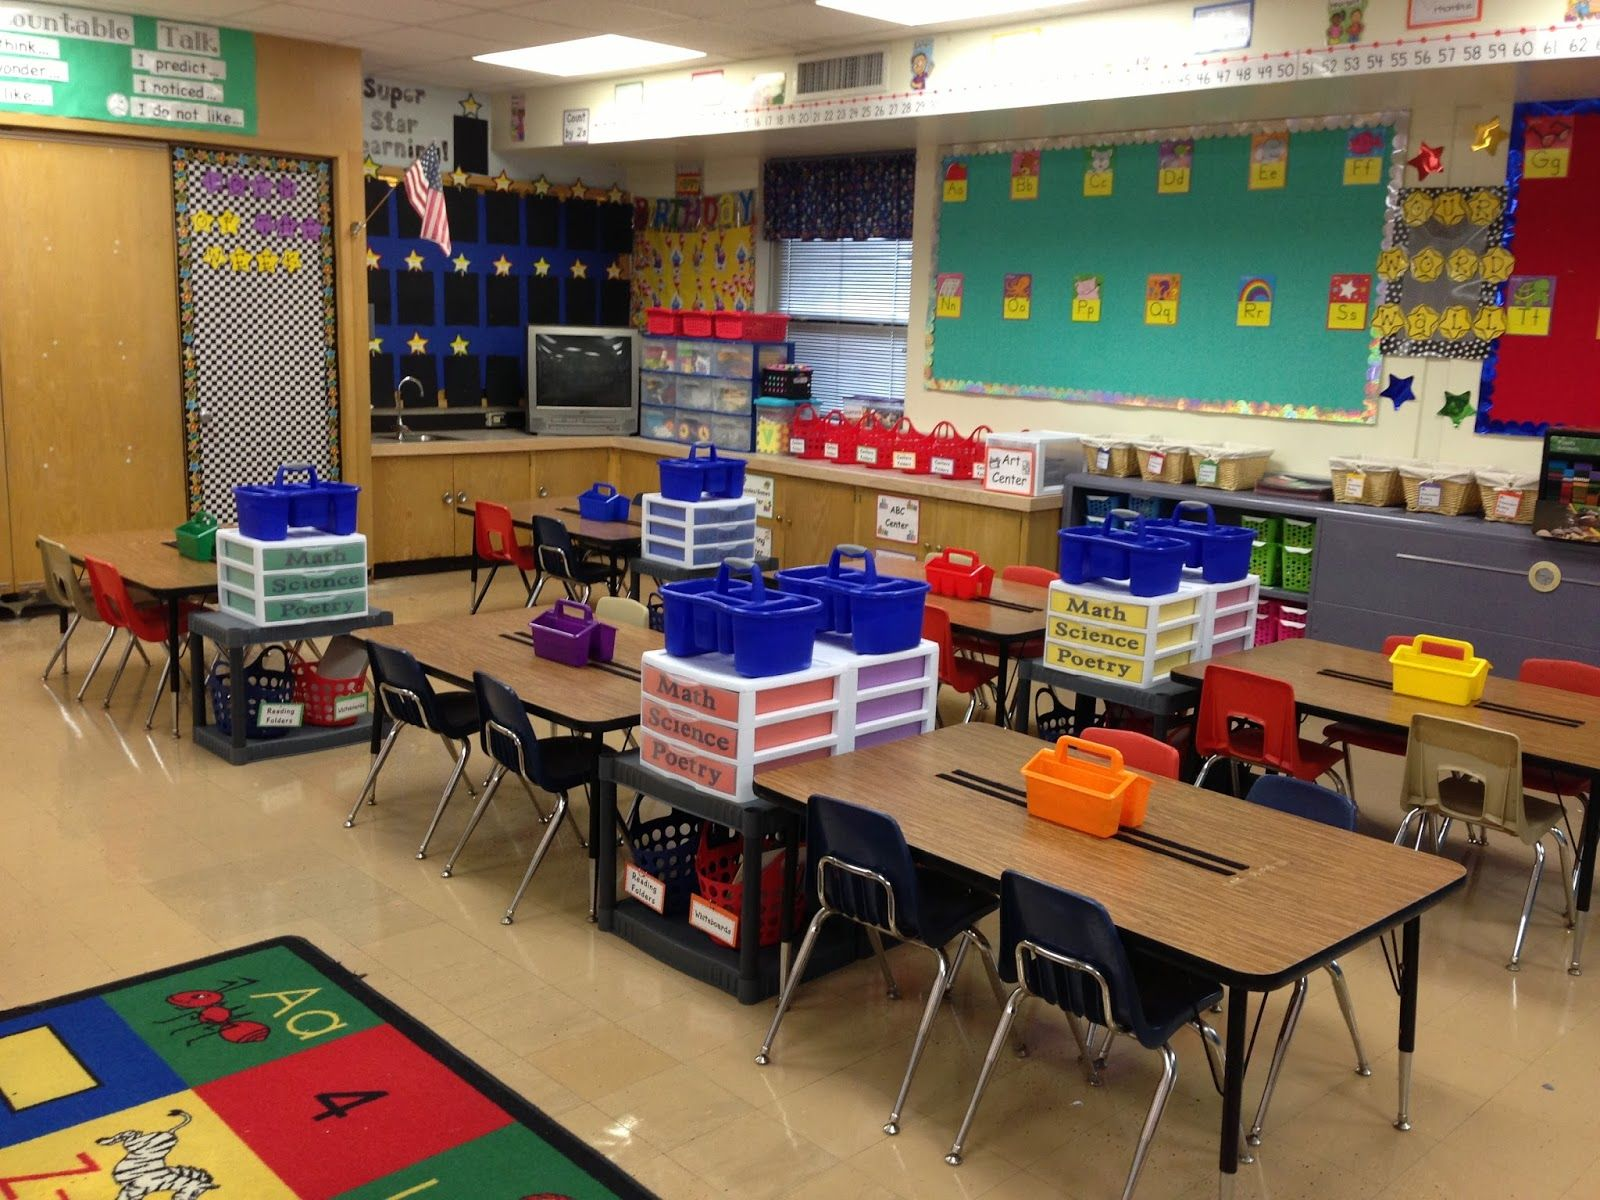 Classroom Organization Ideas 5th Grade ~ No matter what grade i teach next year am thinking of